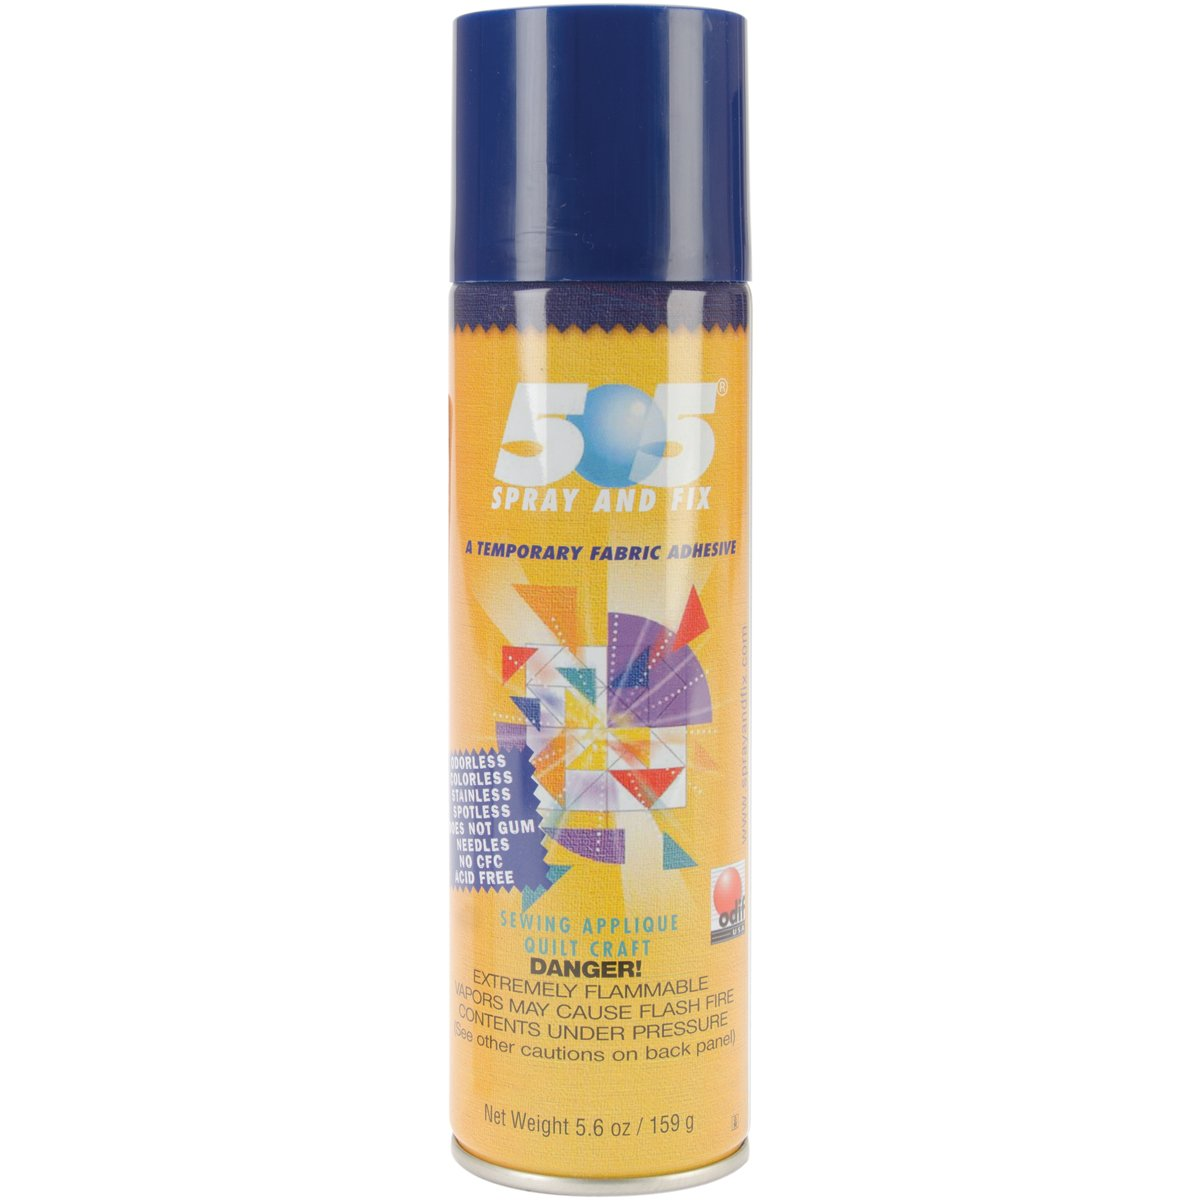 Odif Usa 5.6-Ounce 505 Spray and Fix Temporary Fabric Adhesive